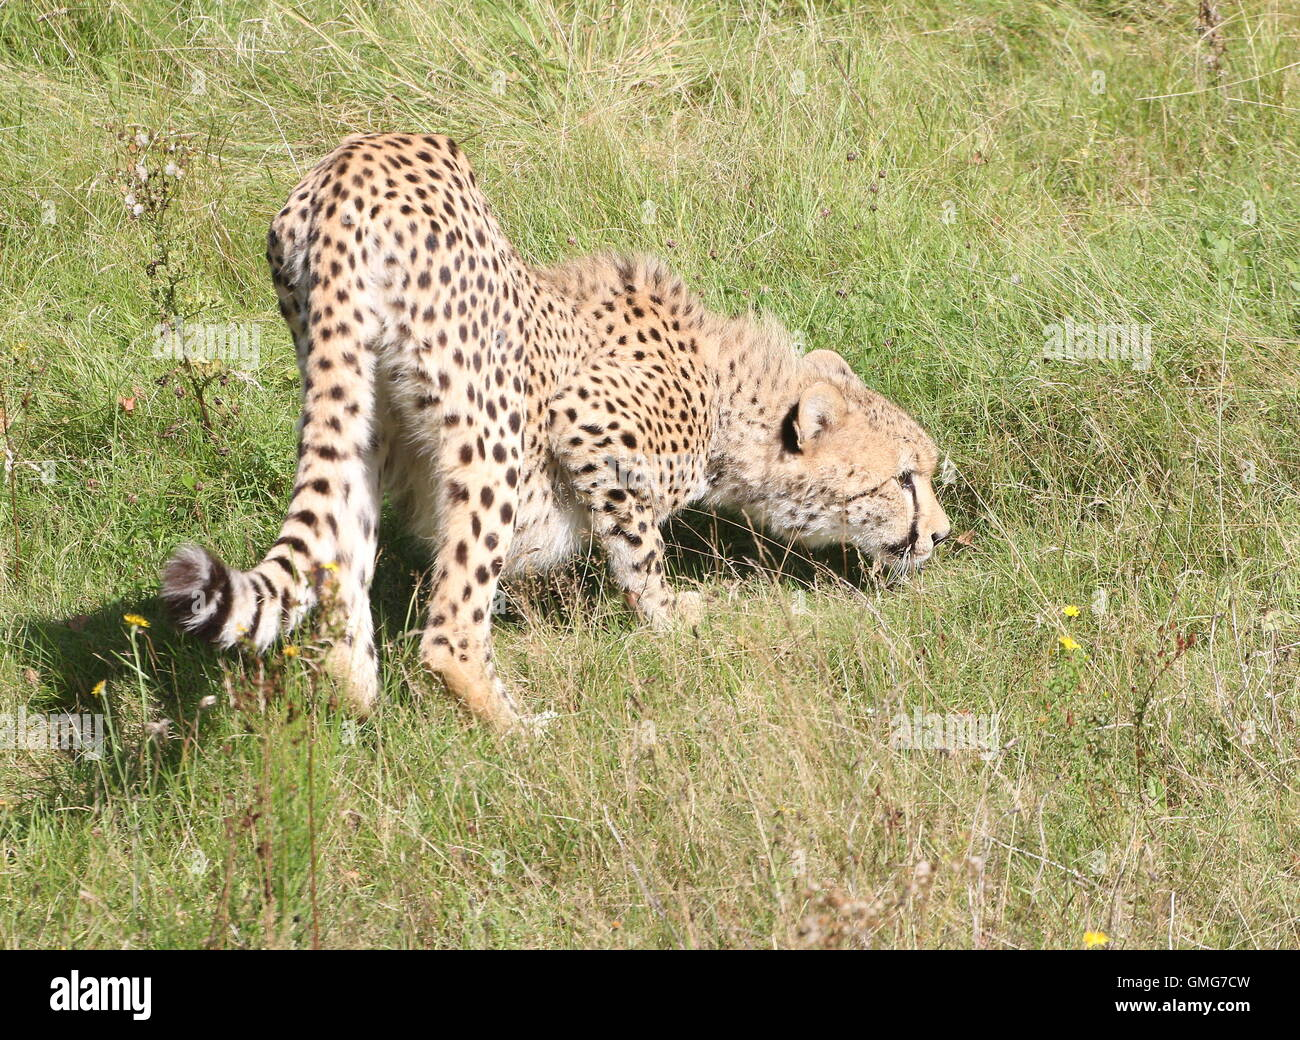 Male African Cheetah (Acinonyx jubatus)  on the prowl, picking up a scent - Stock Image